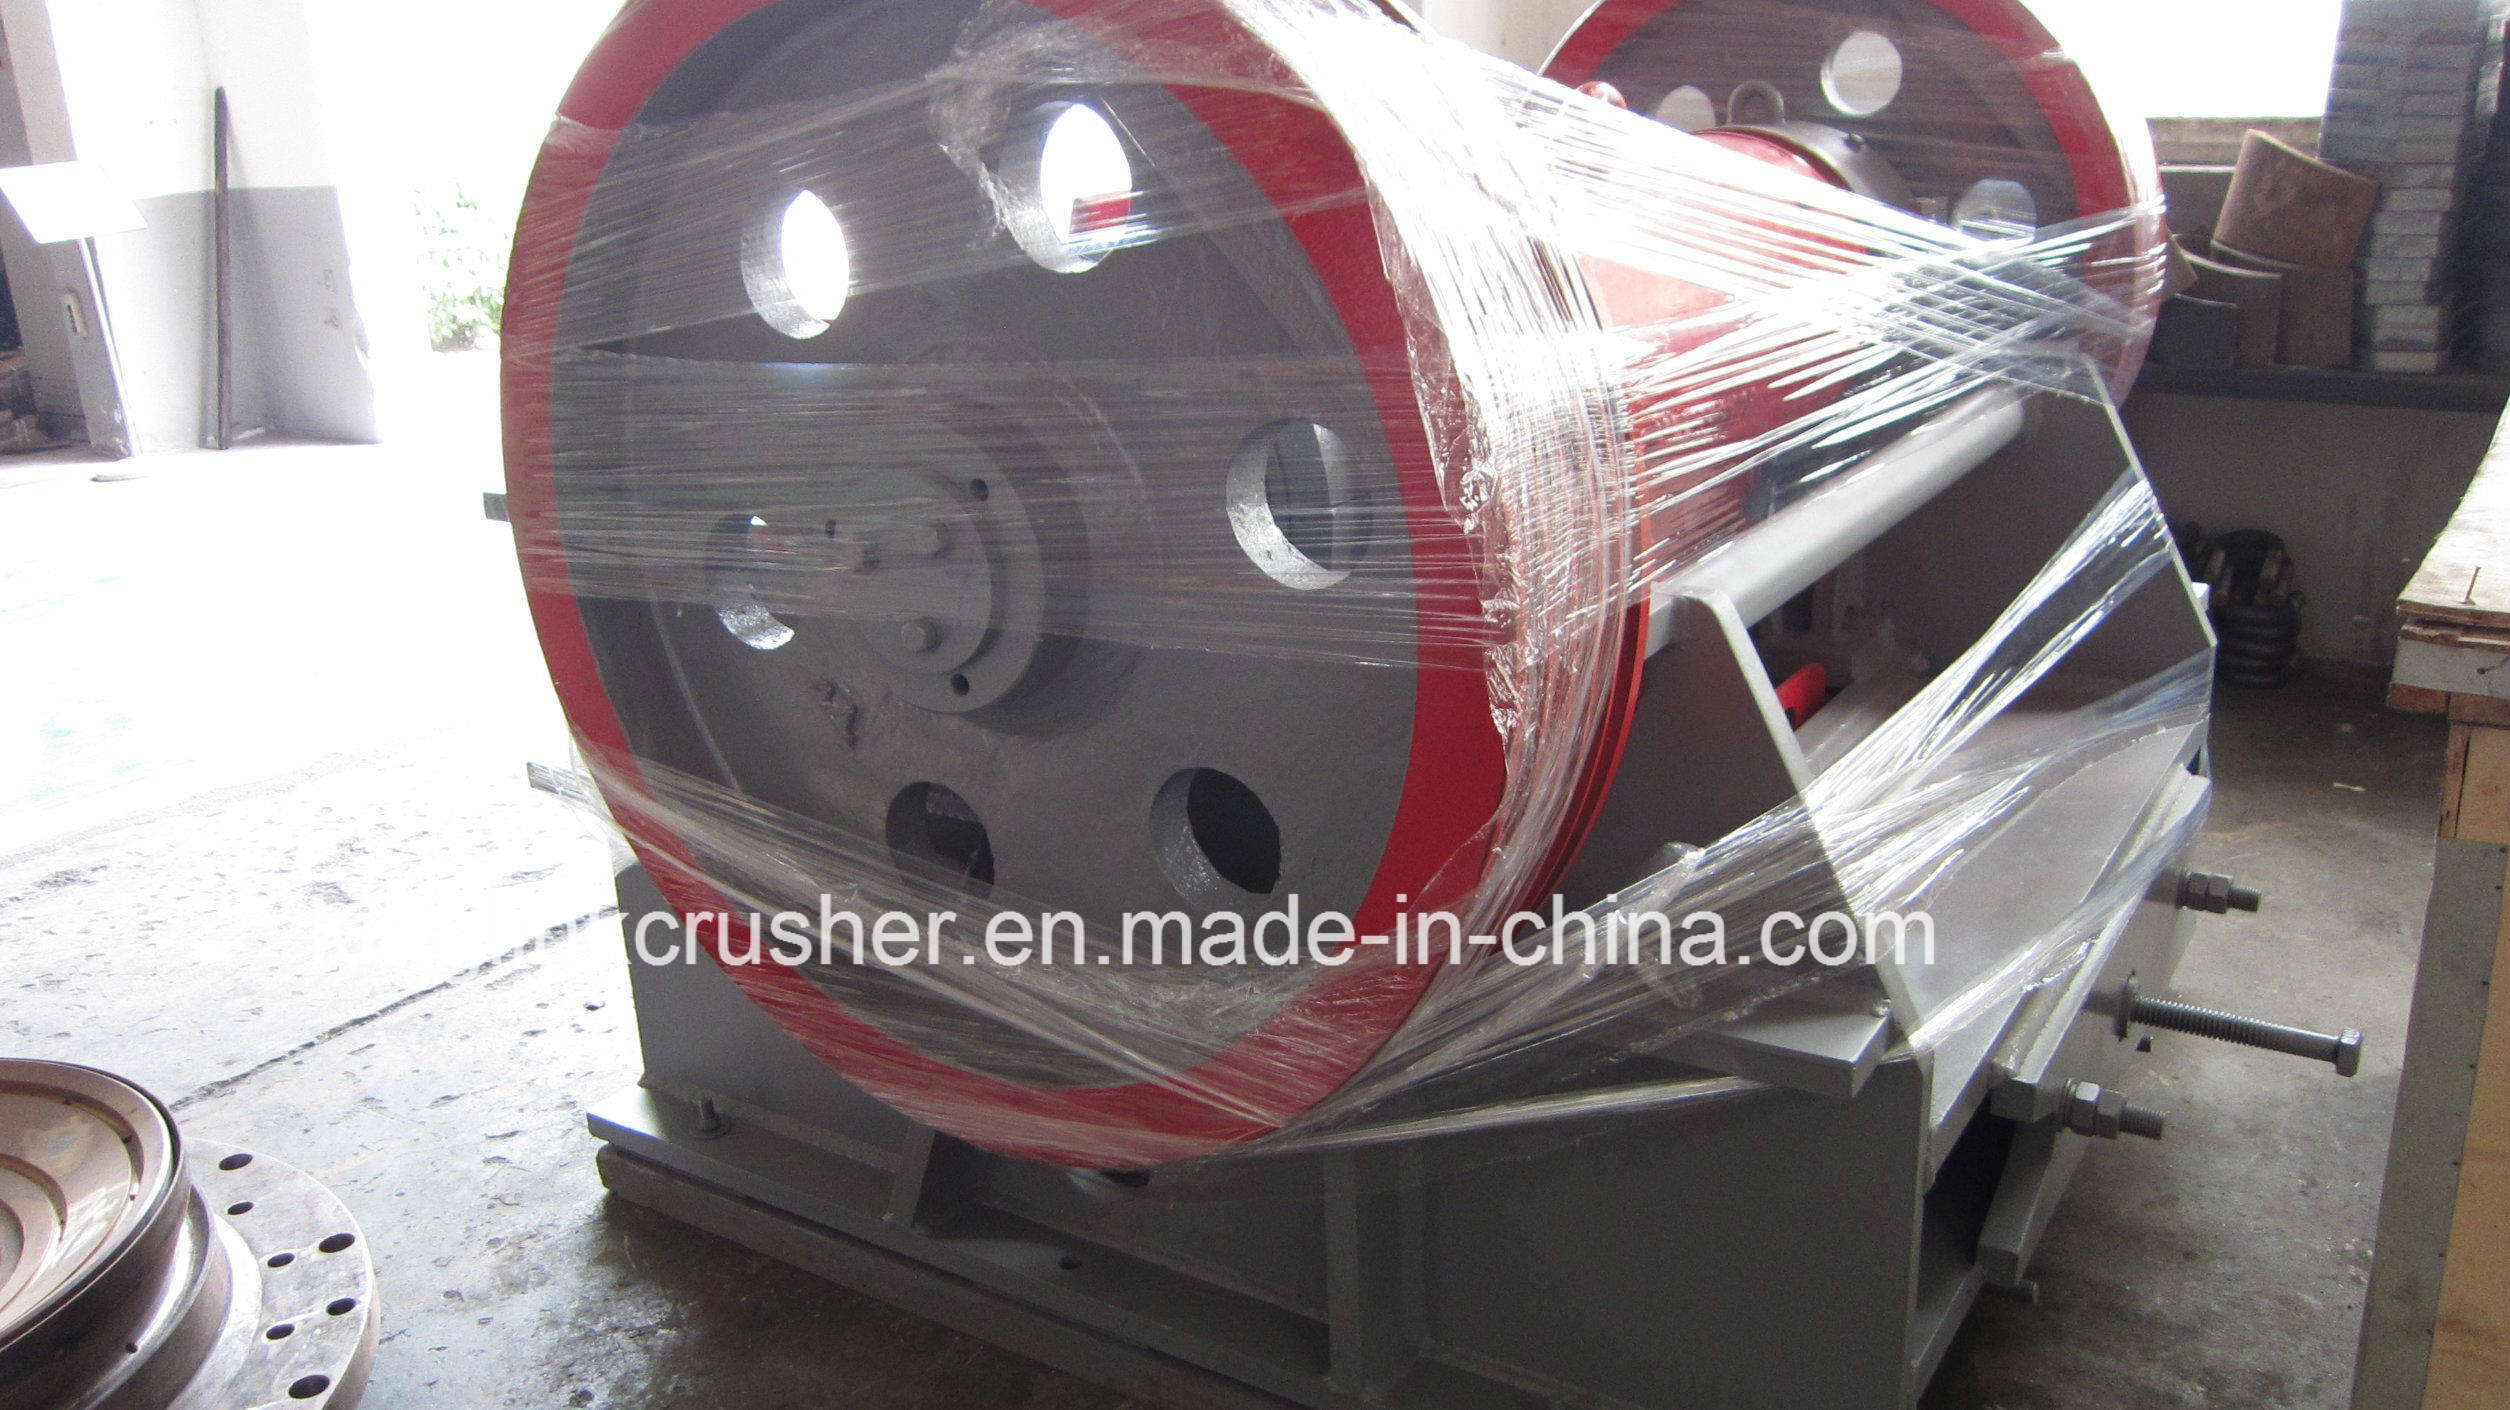 Pex Series Jaw Crusher